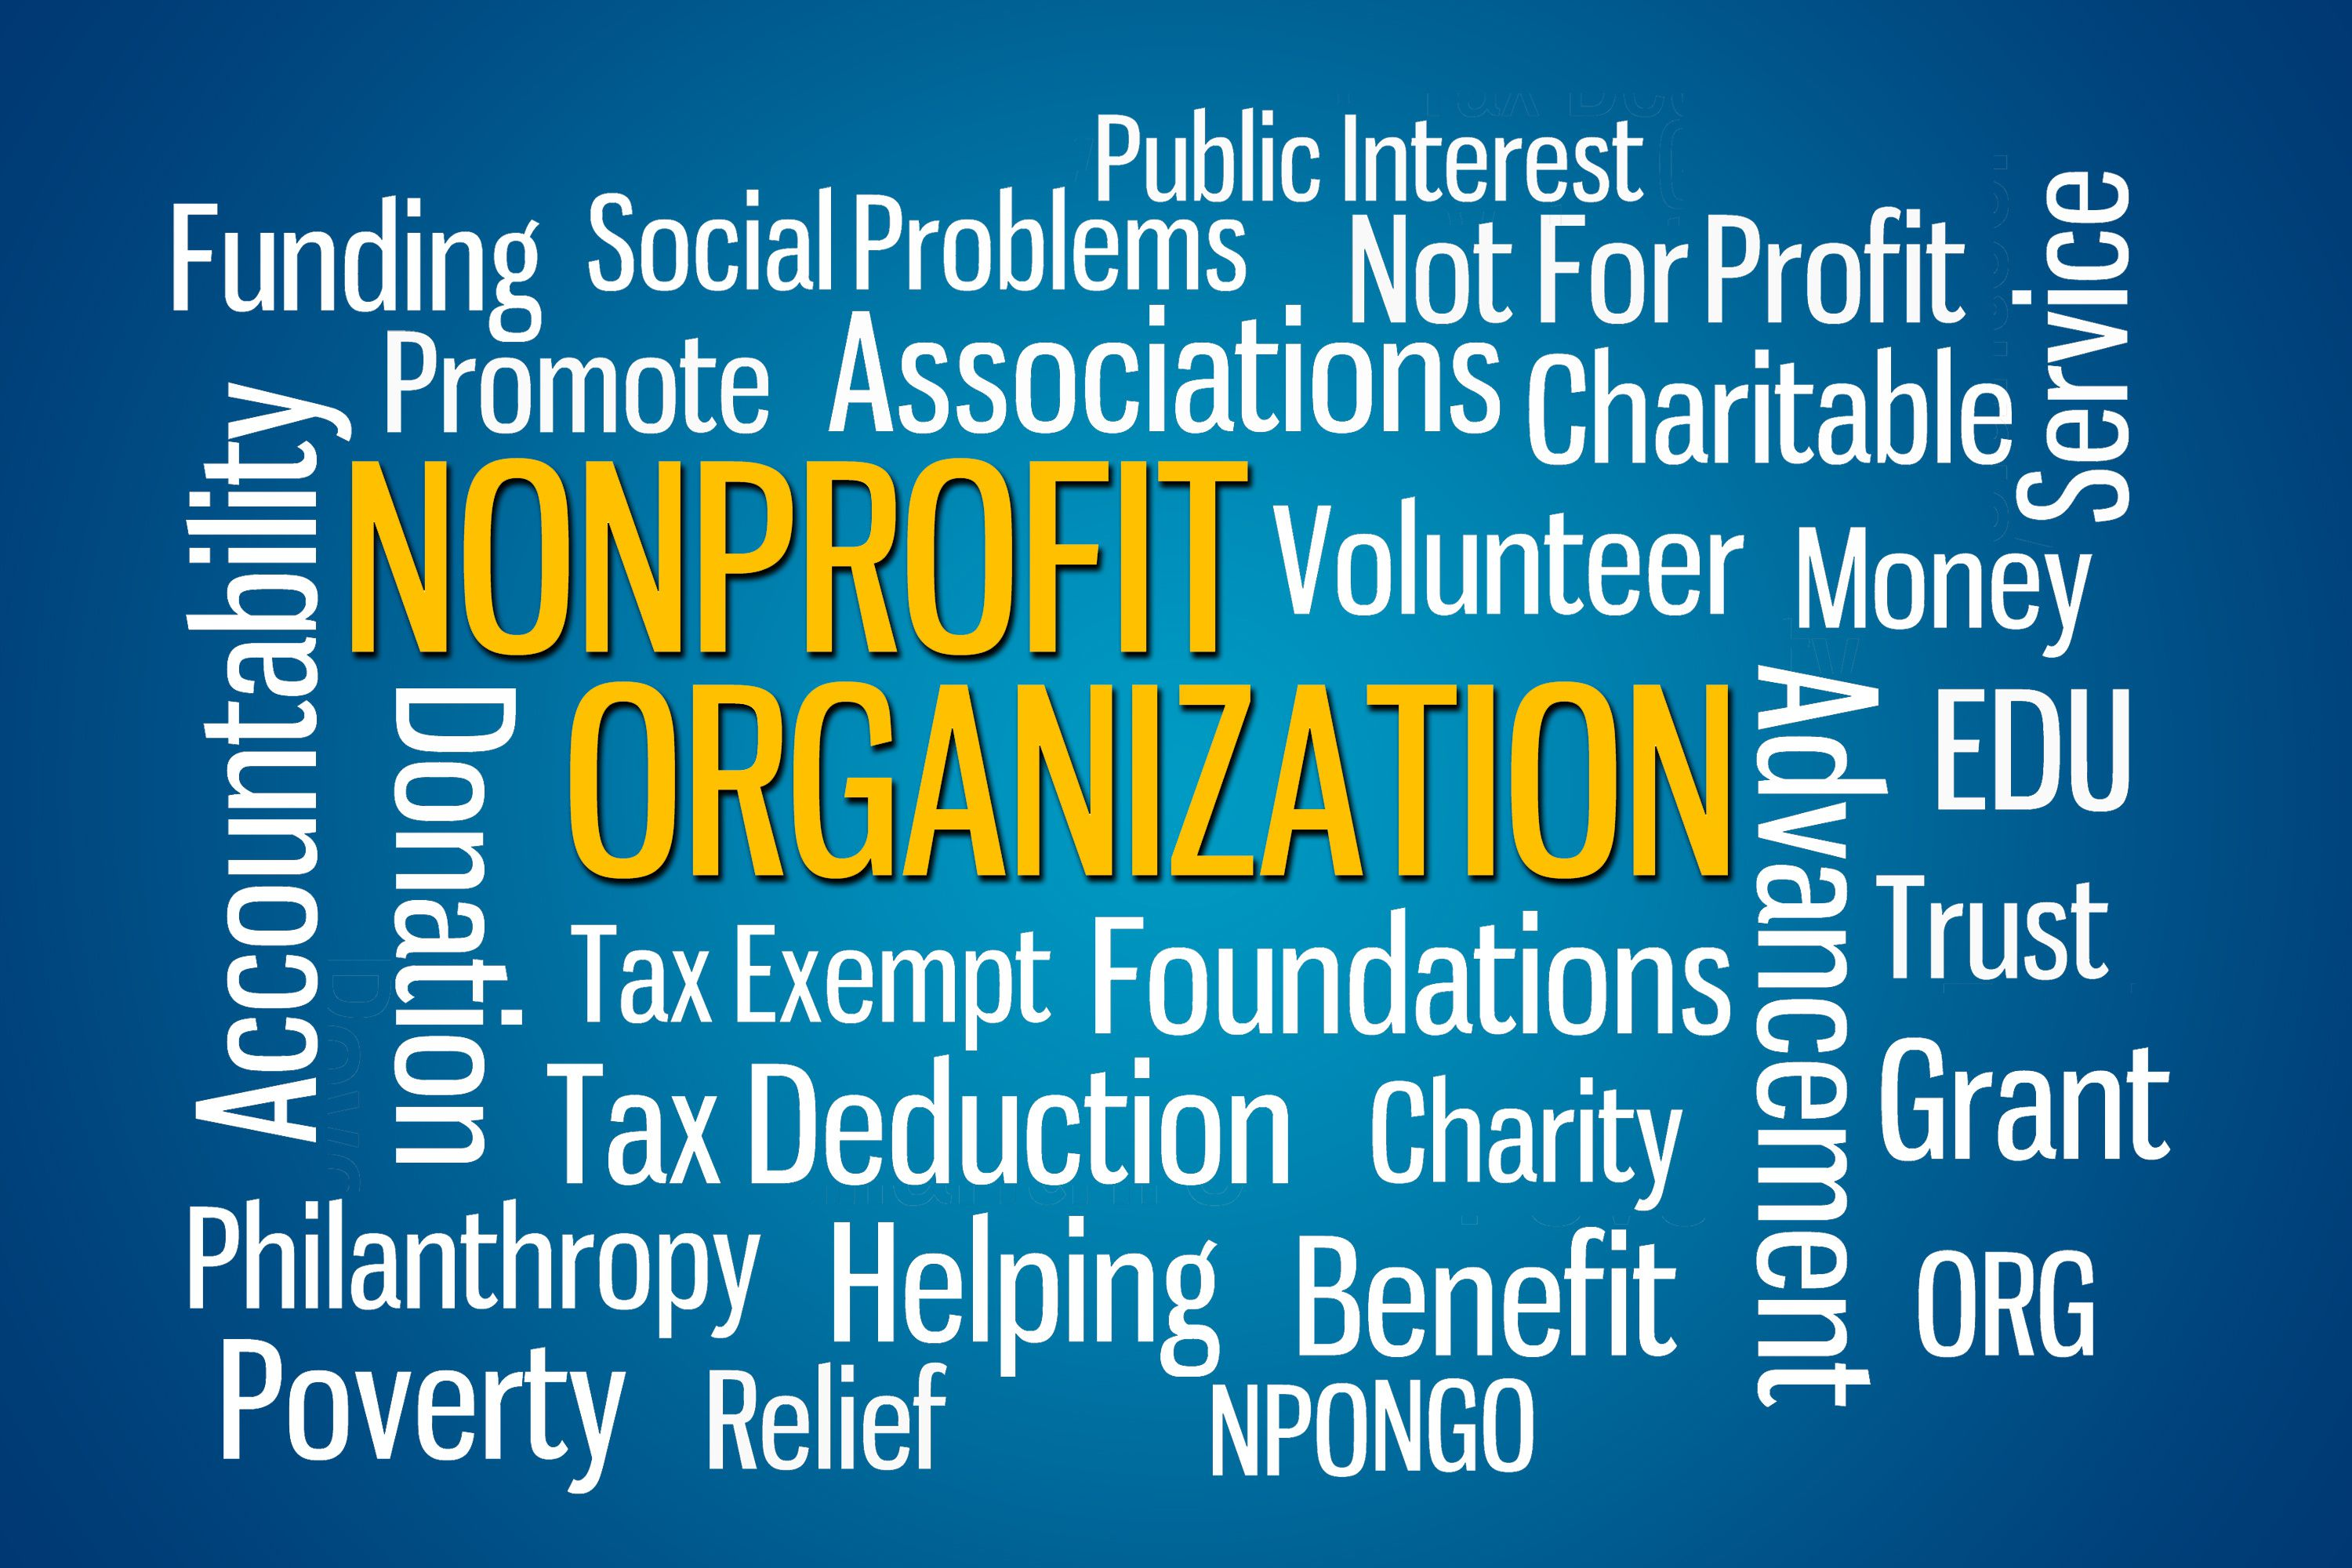 What is a Nonprofit Organization Exactly?